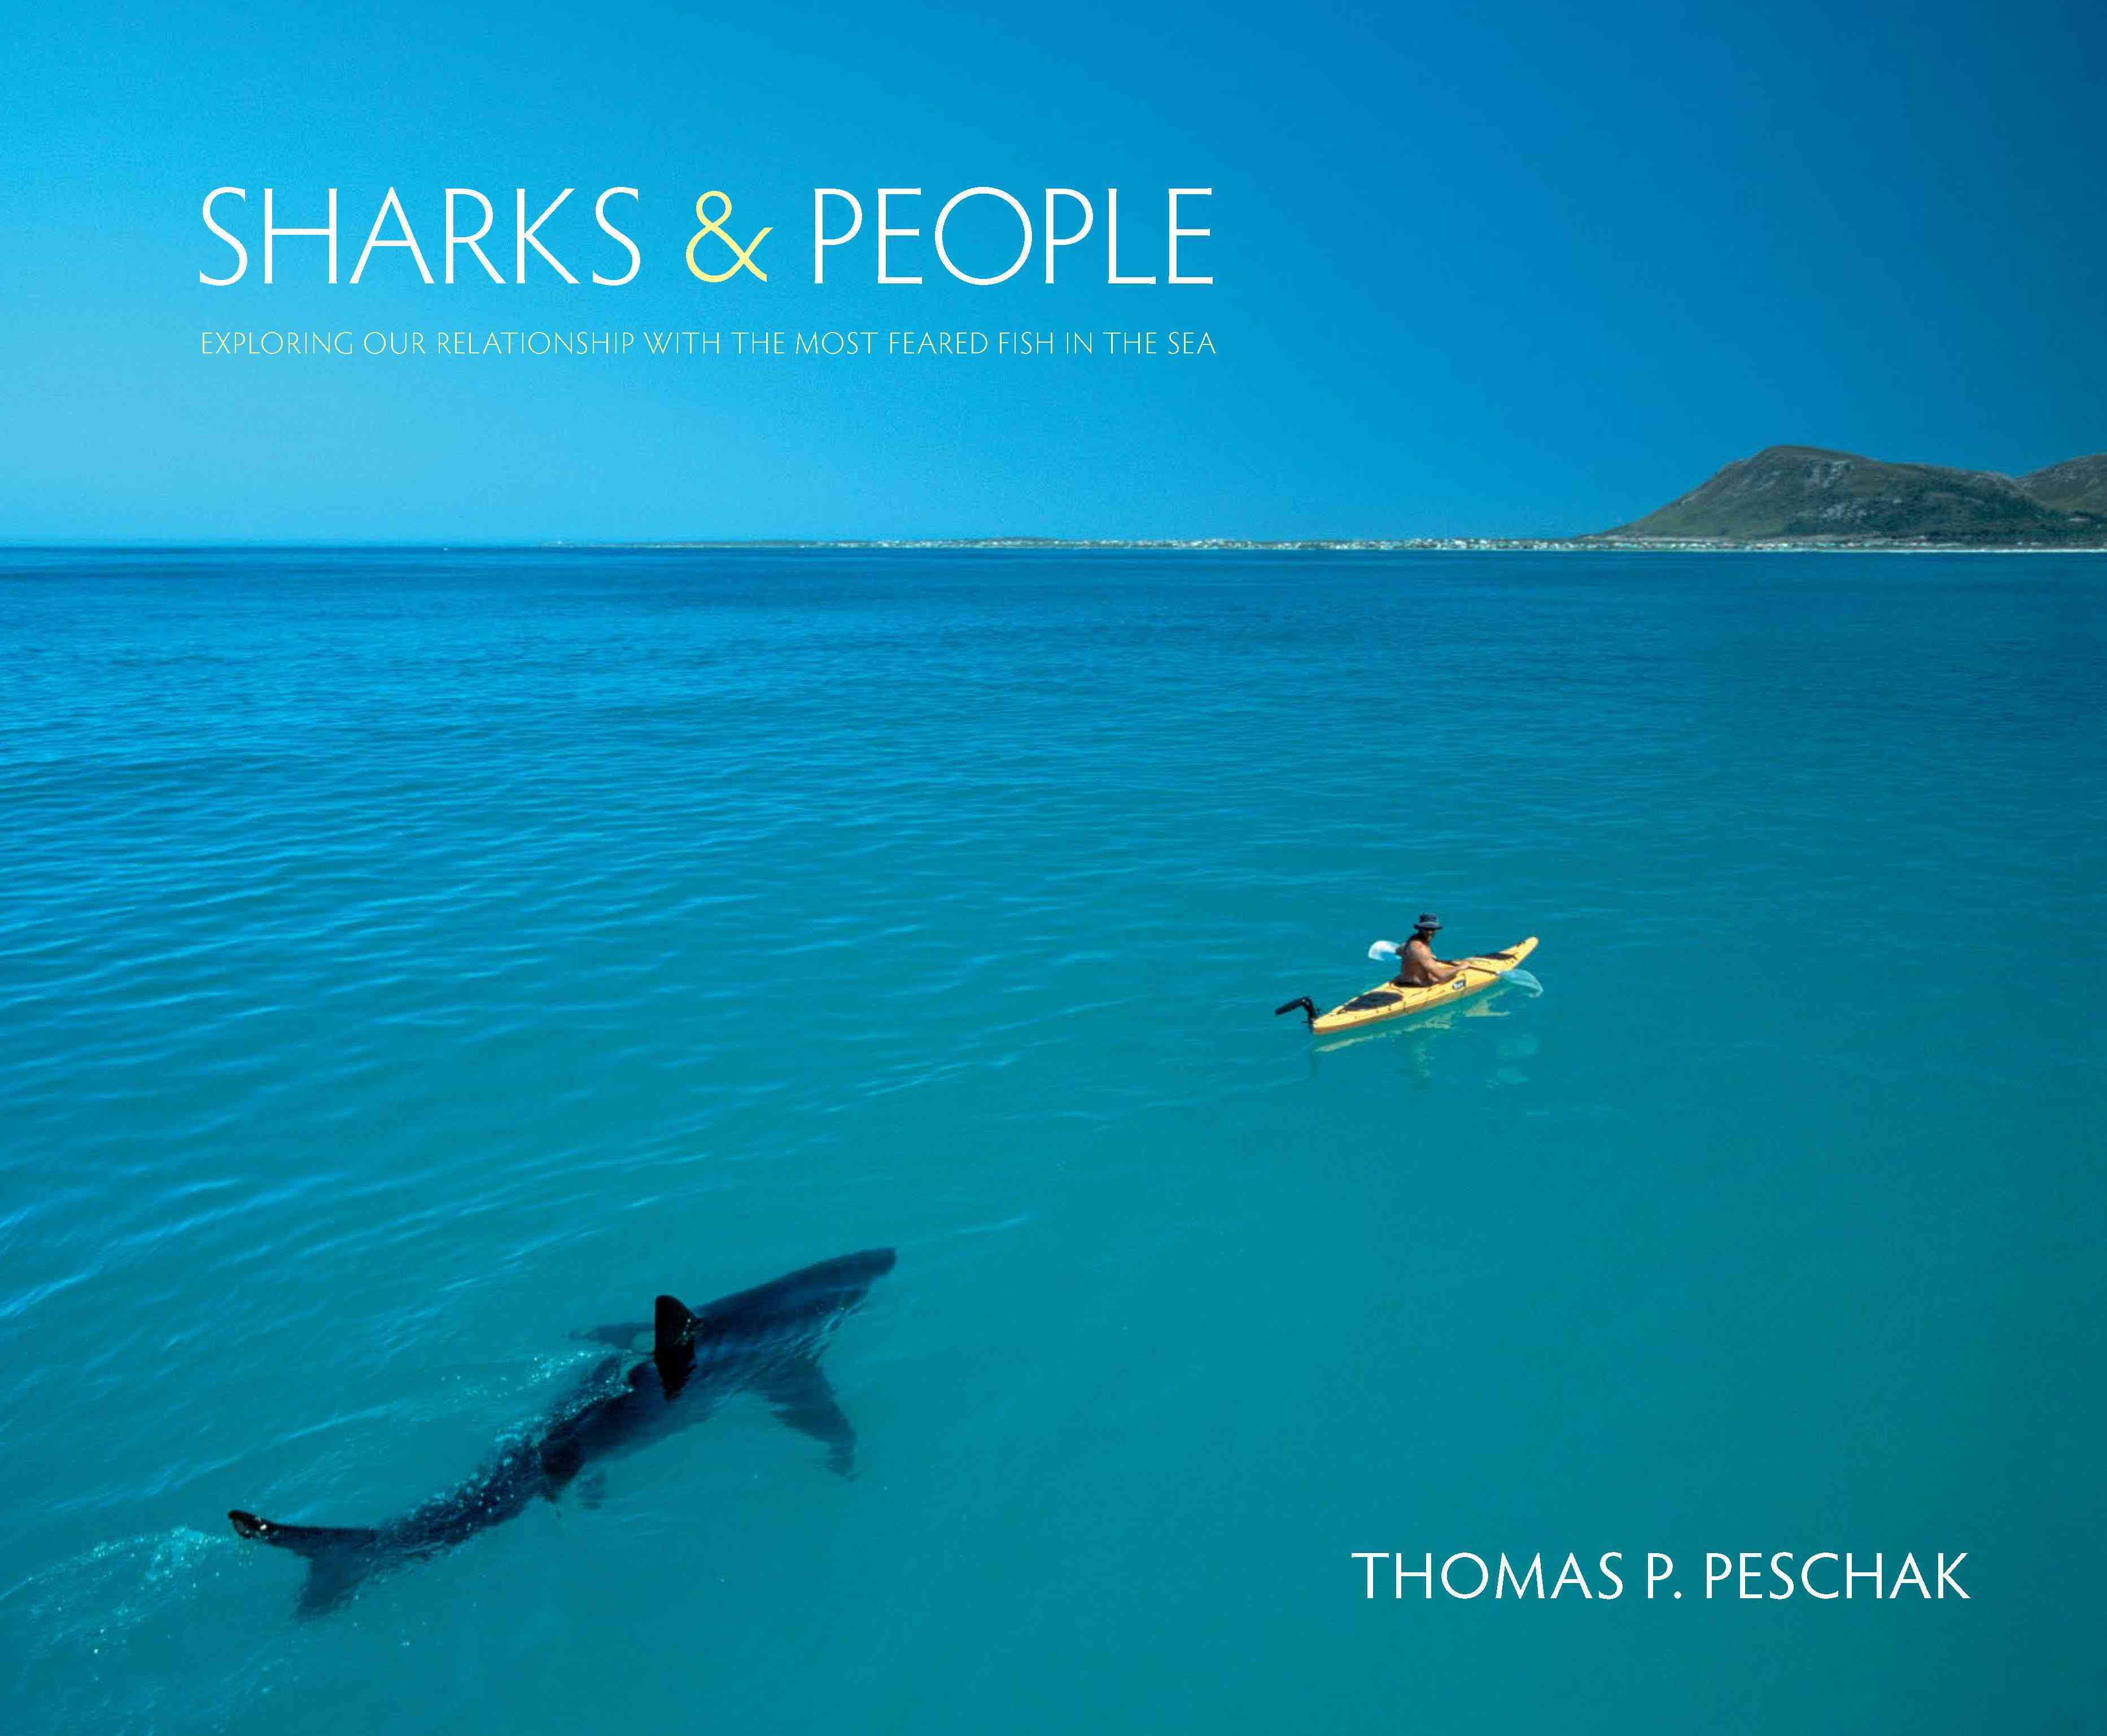 Sharks & People: Exploring Our Relationship With the Most Feared Fish in the Sea (Hardcover)